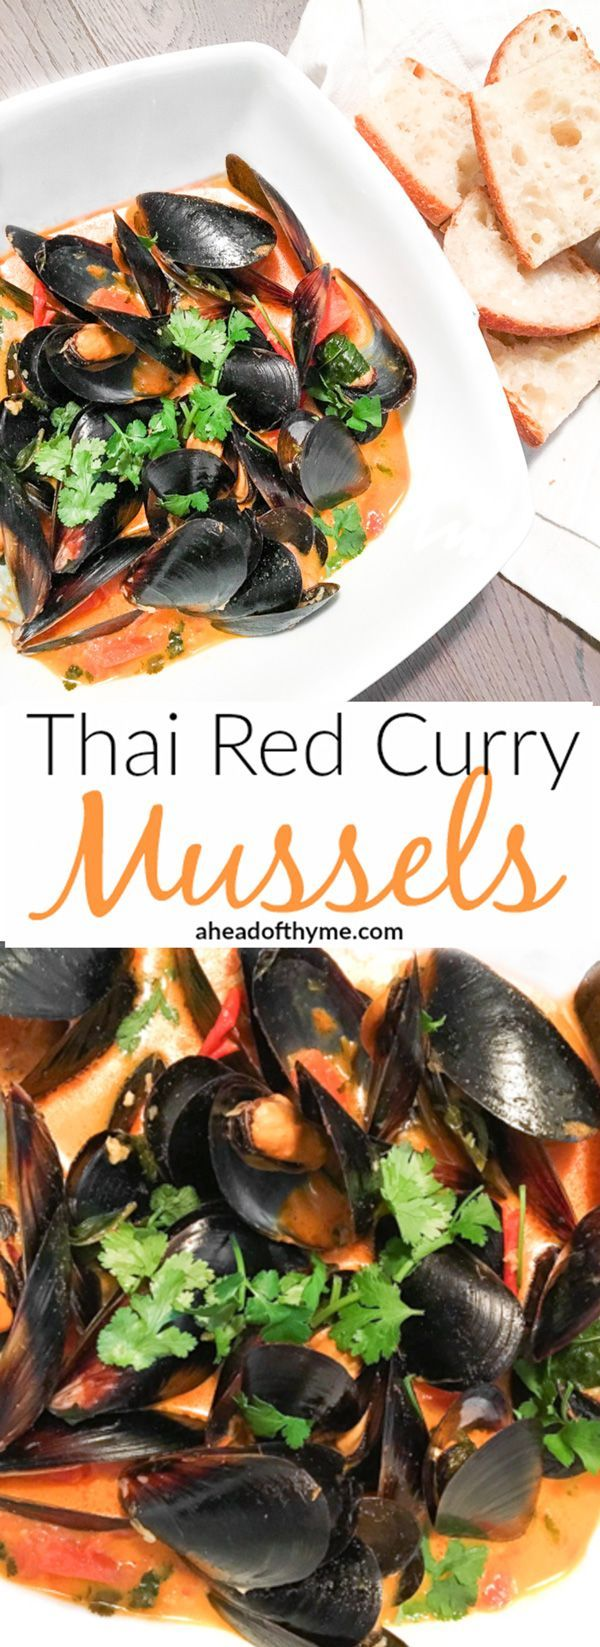 Thai Red Curry Mussels - Show off your kitchen skills with this quick and gorgeous appetizer. Serve with a side of bread for dipping. | Ahead of Thyme